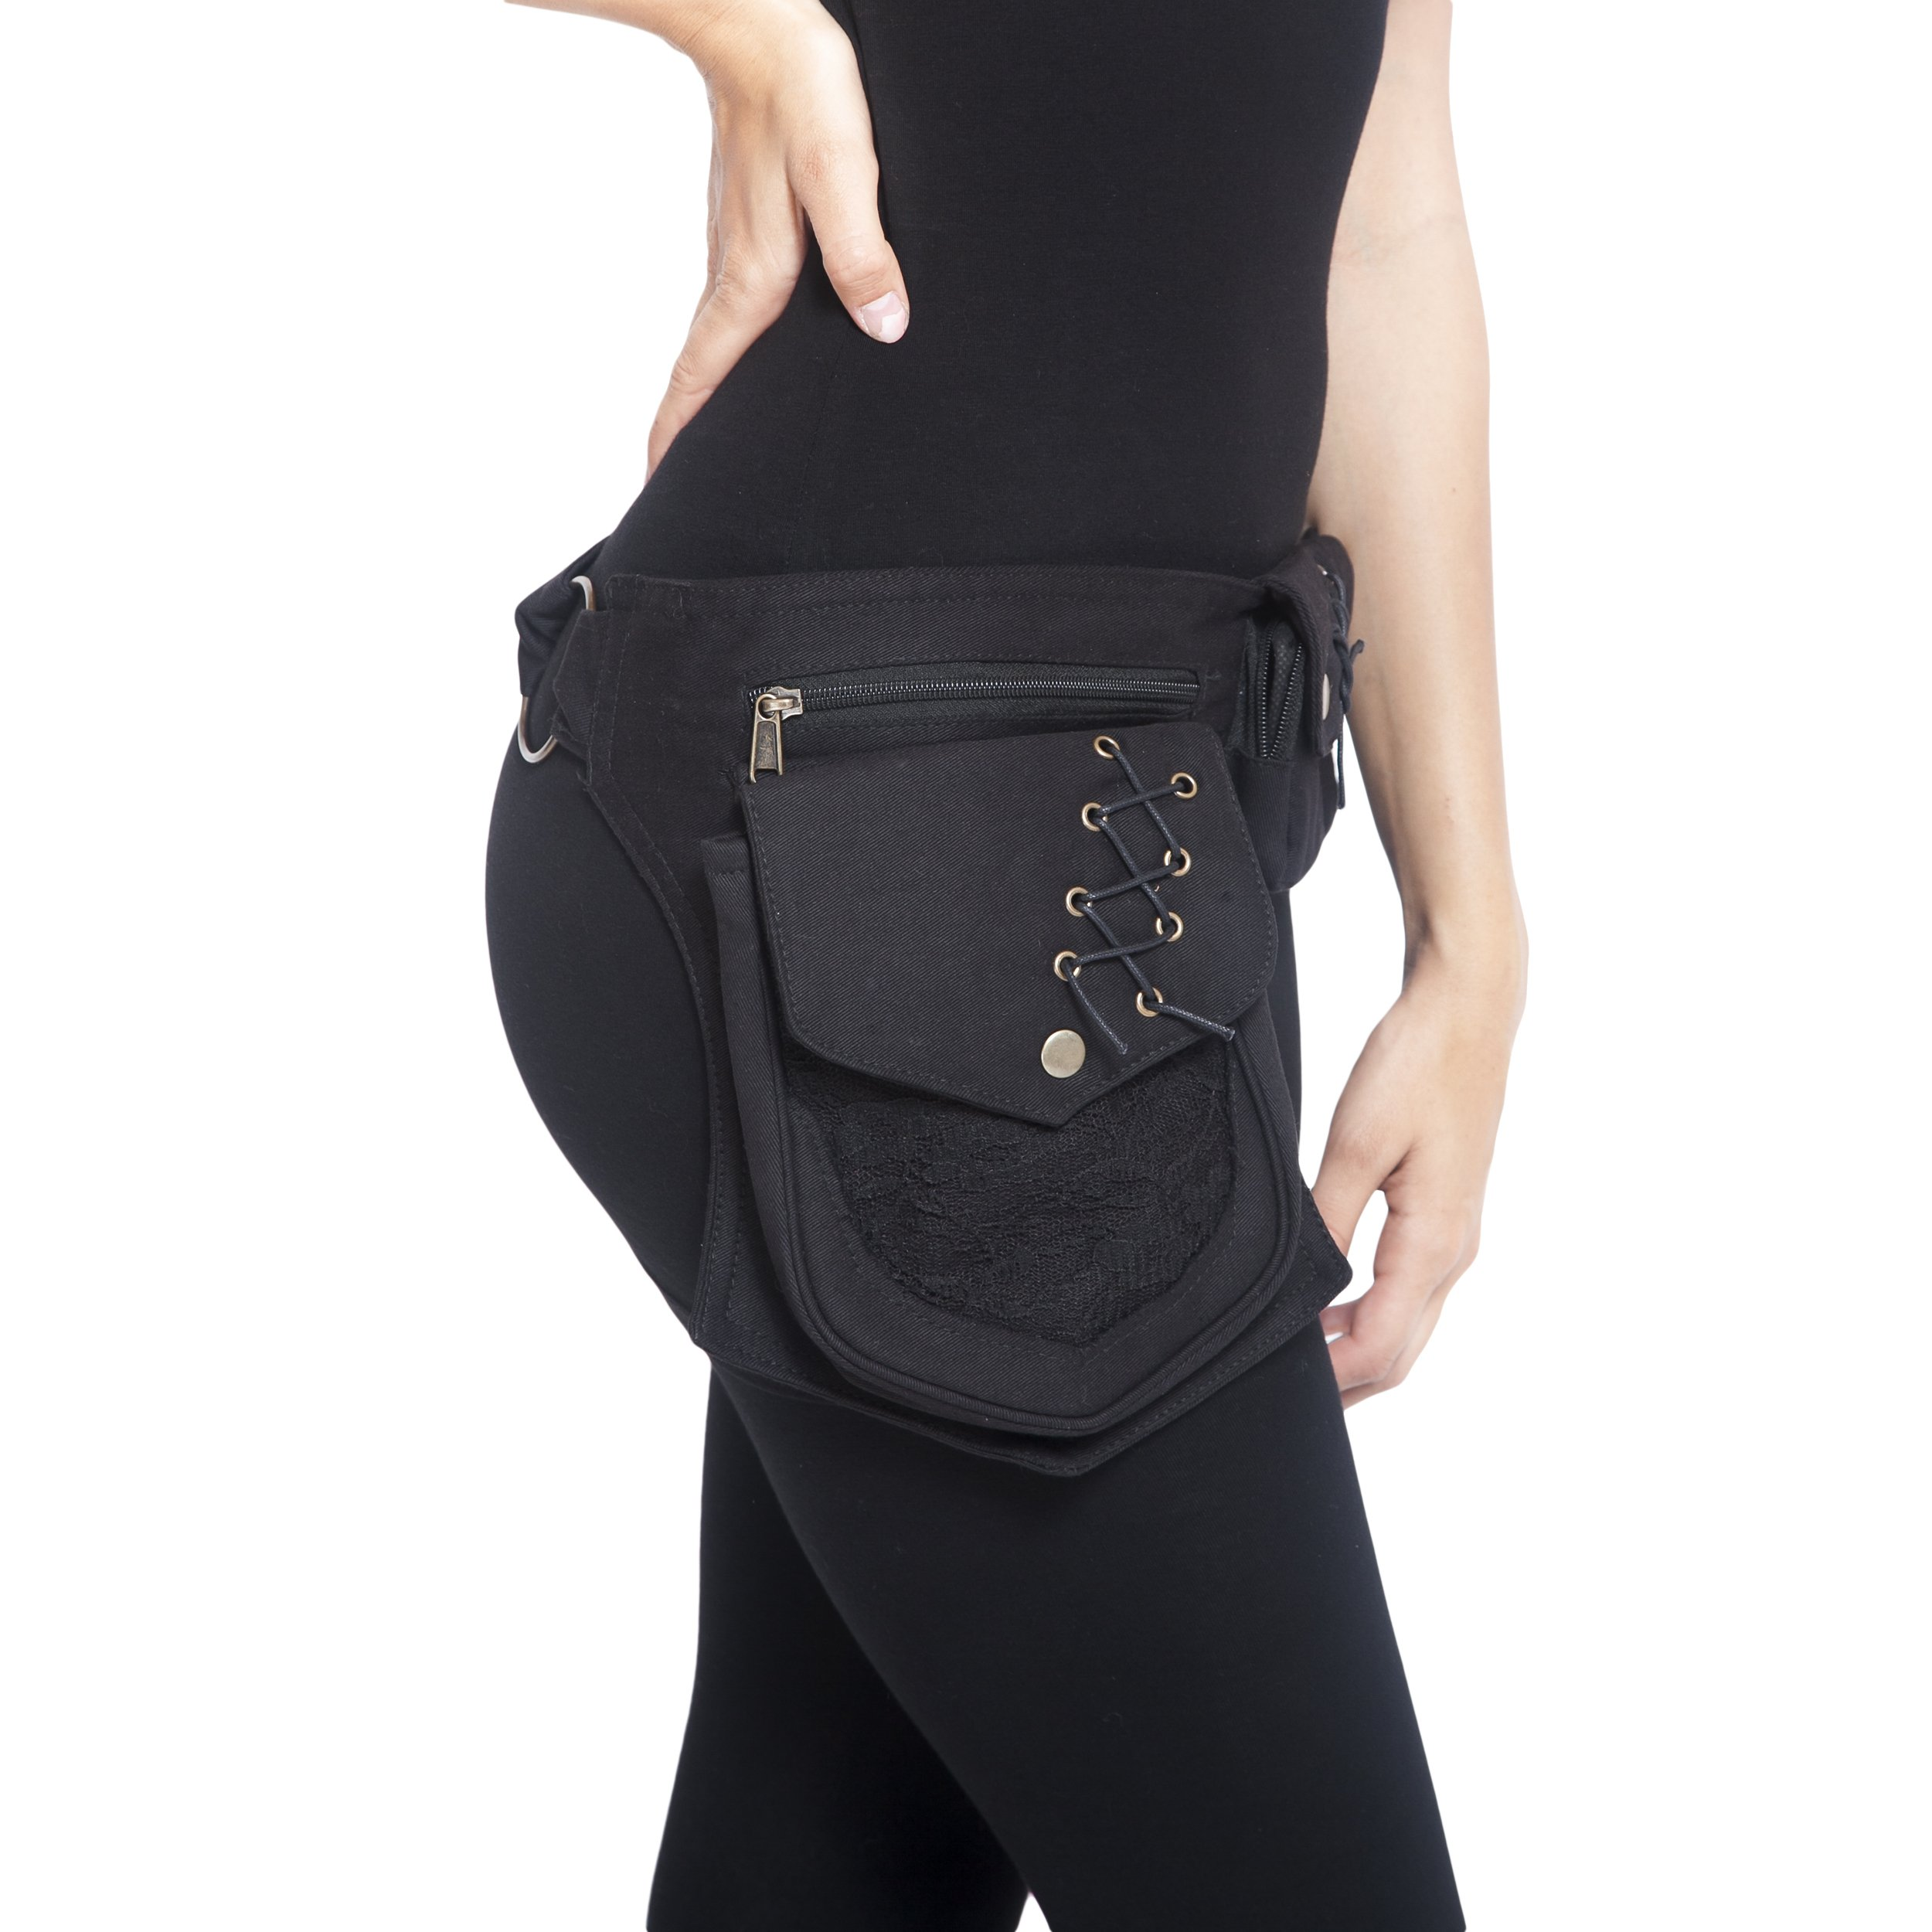 Practical Fannypack Cotton Waistbag Travel Utility Travel Belt-Black-One Size